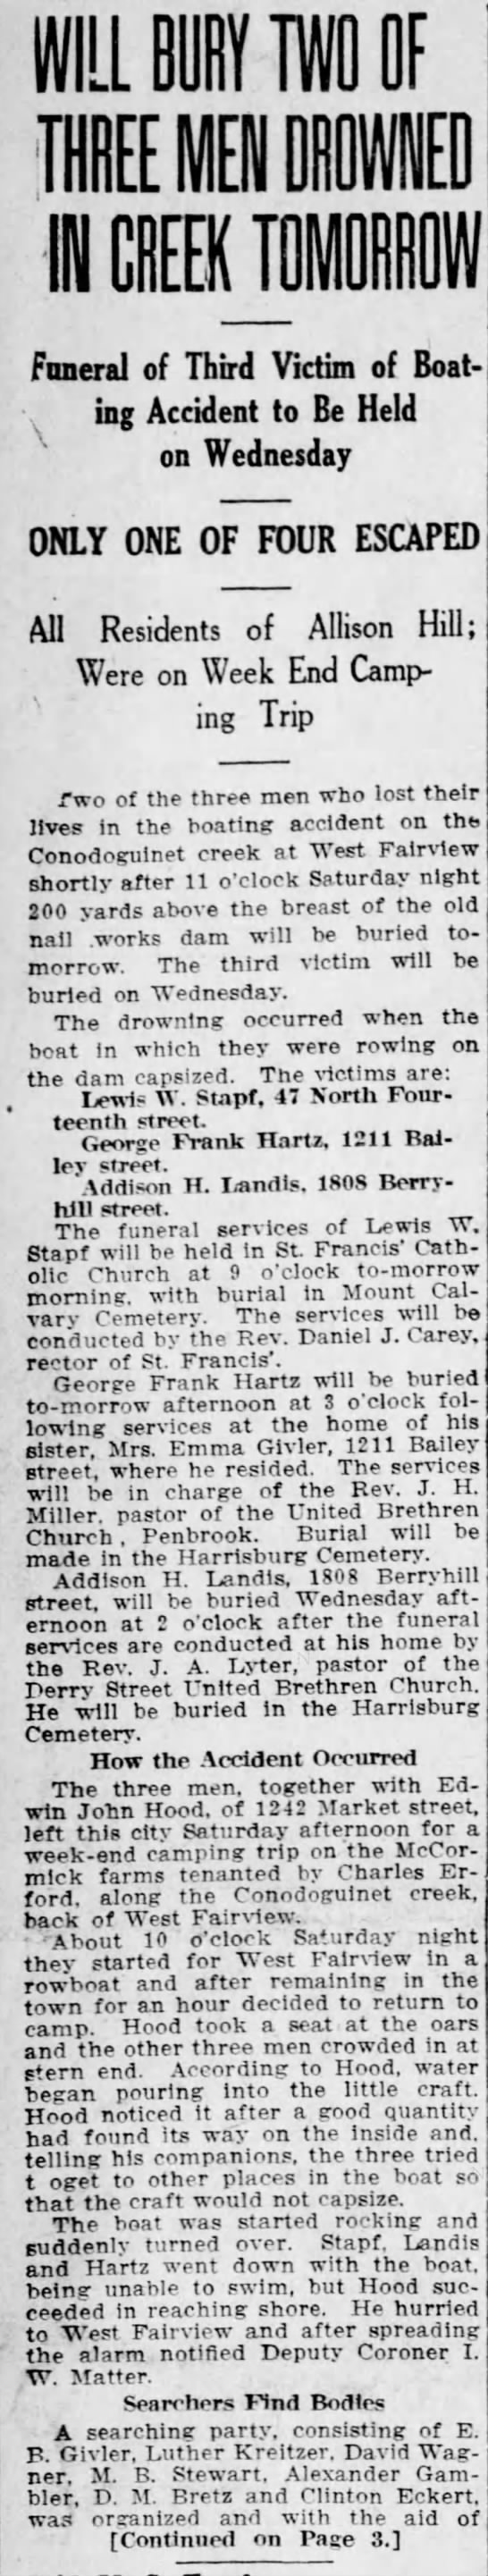 Lewis Stapf drowns in boating accident - Harrisburg Telegraph - Aug 4 1913 -